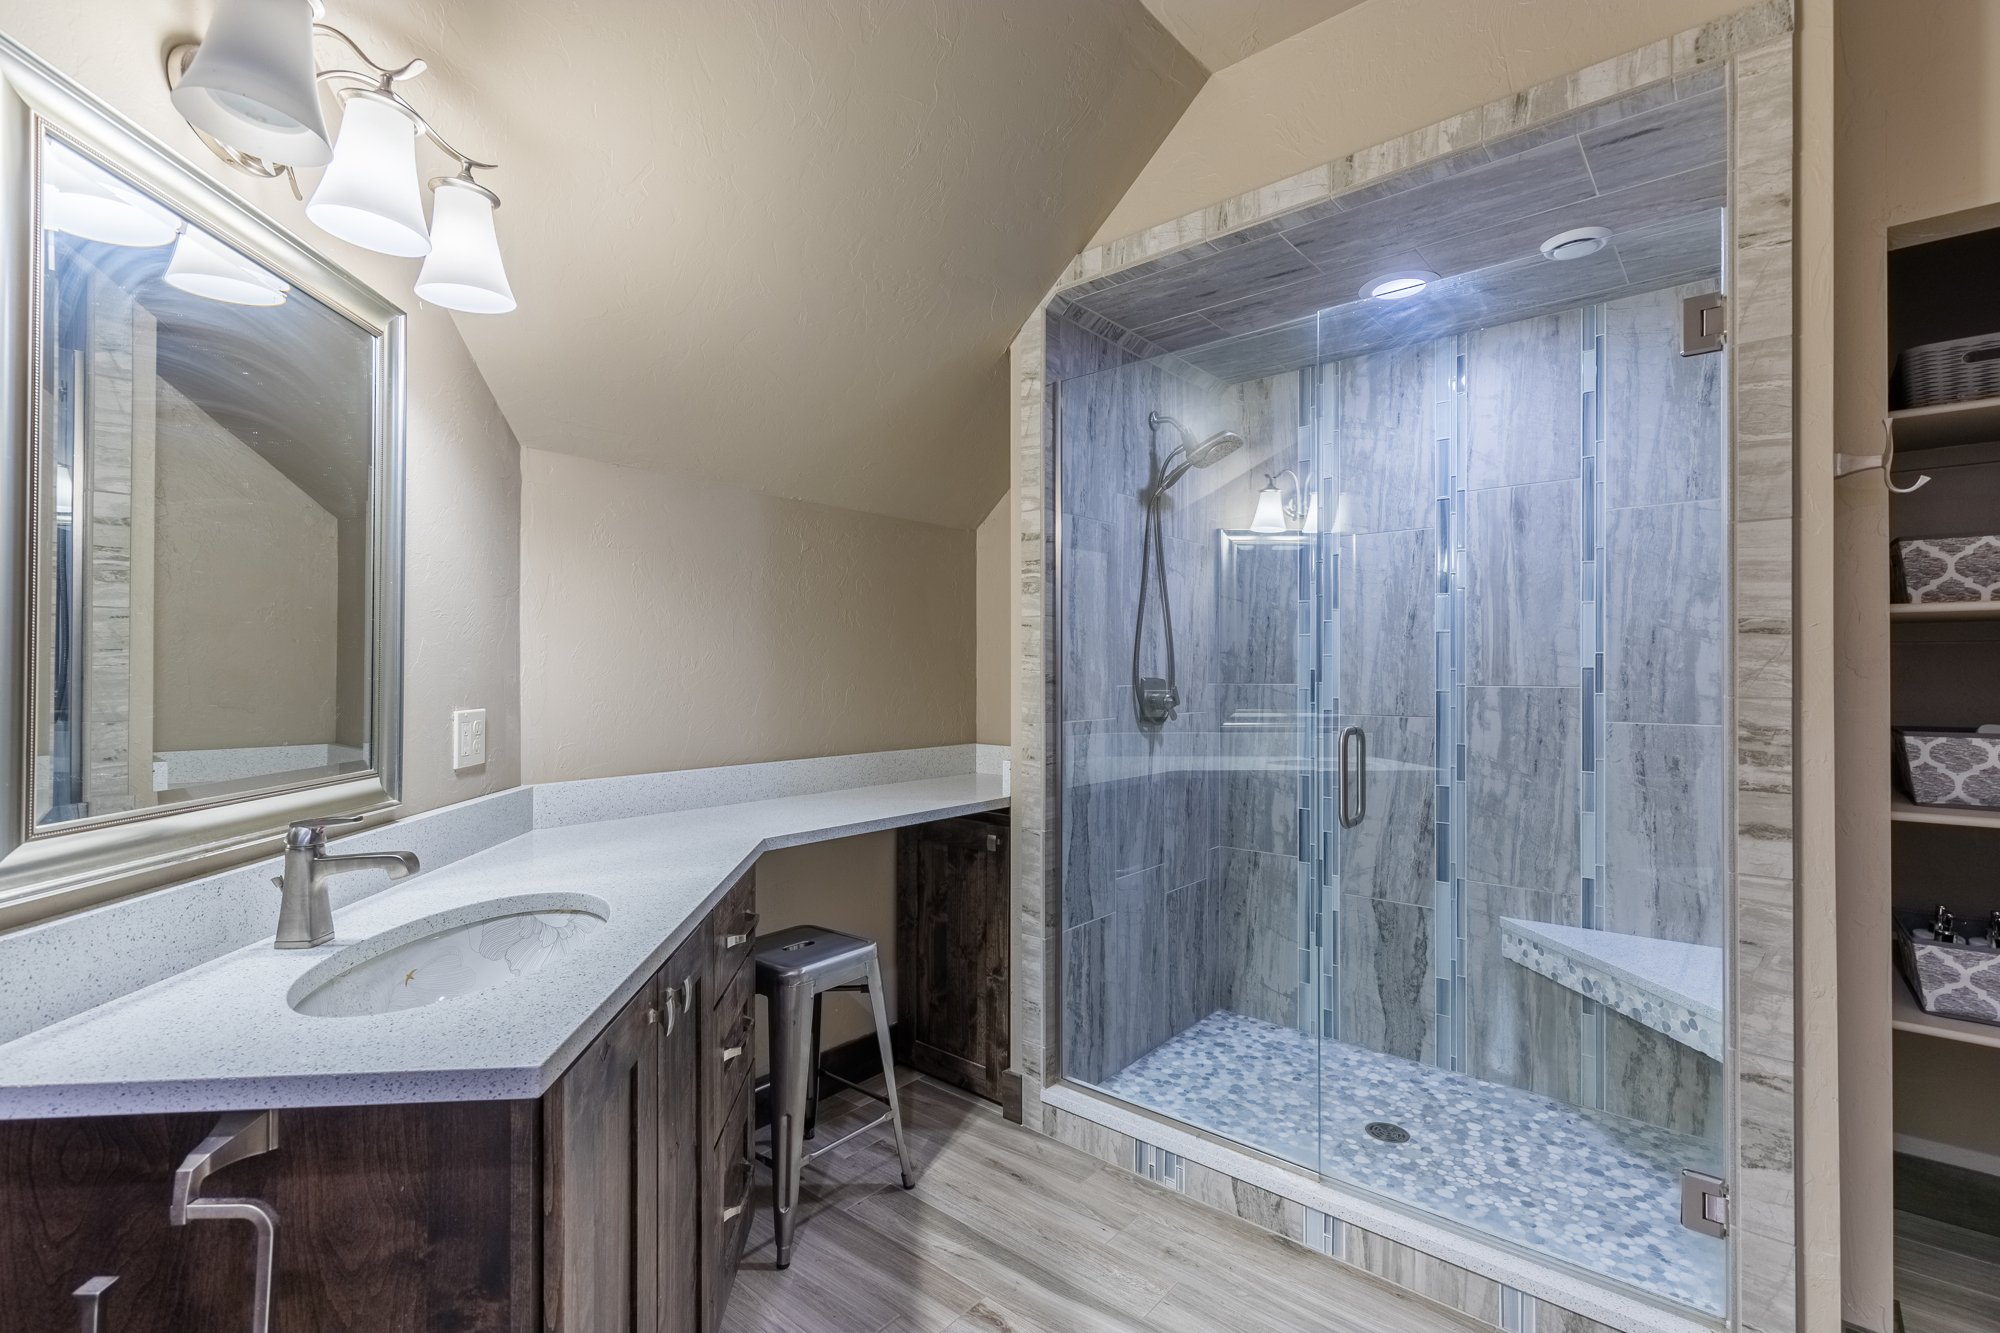 Bathroom with Counter Seating - 15067 6140 Ln Montrose, CO 81403 - Atha Team Luxury Real Estate